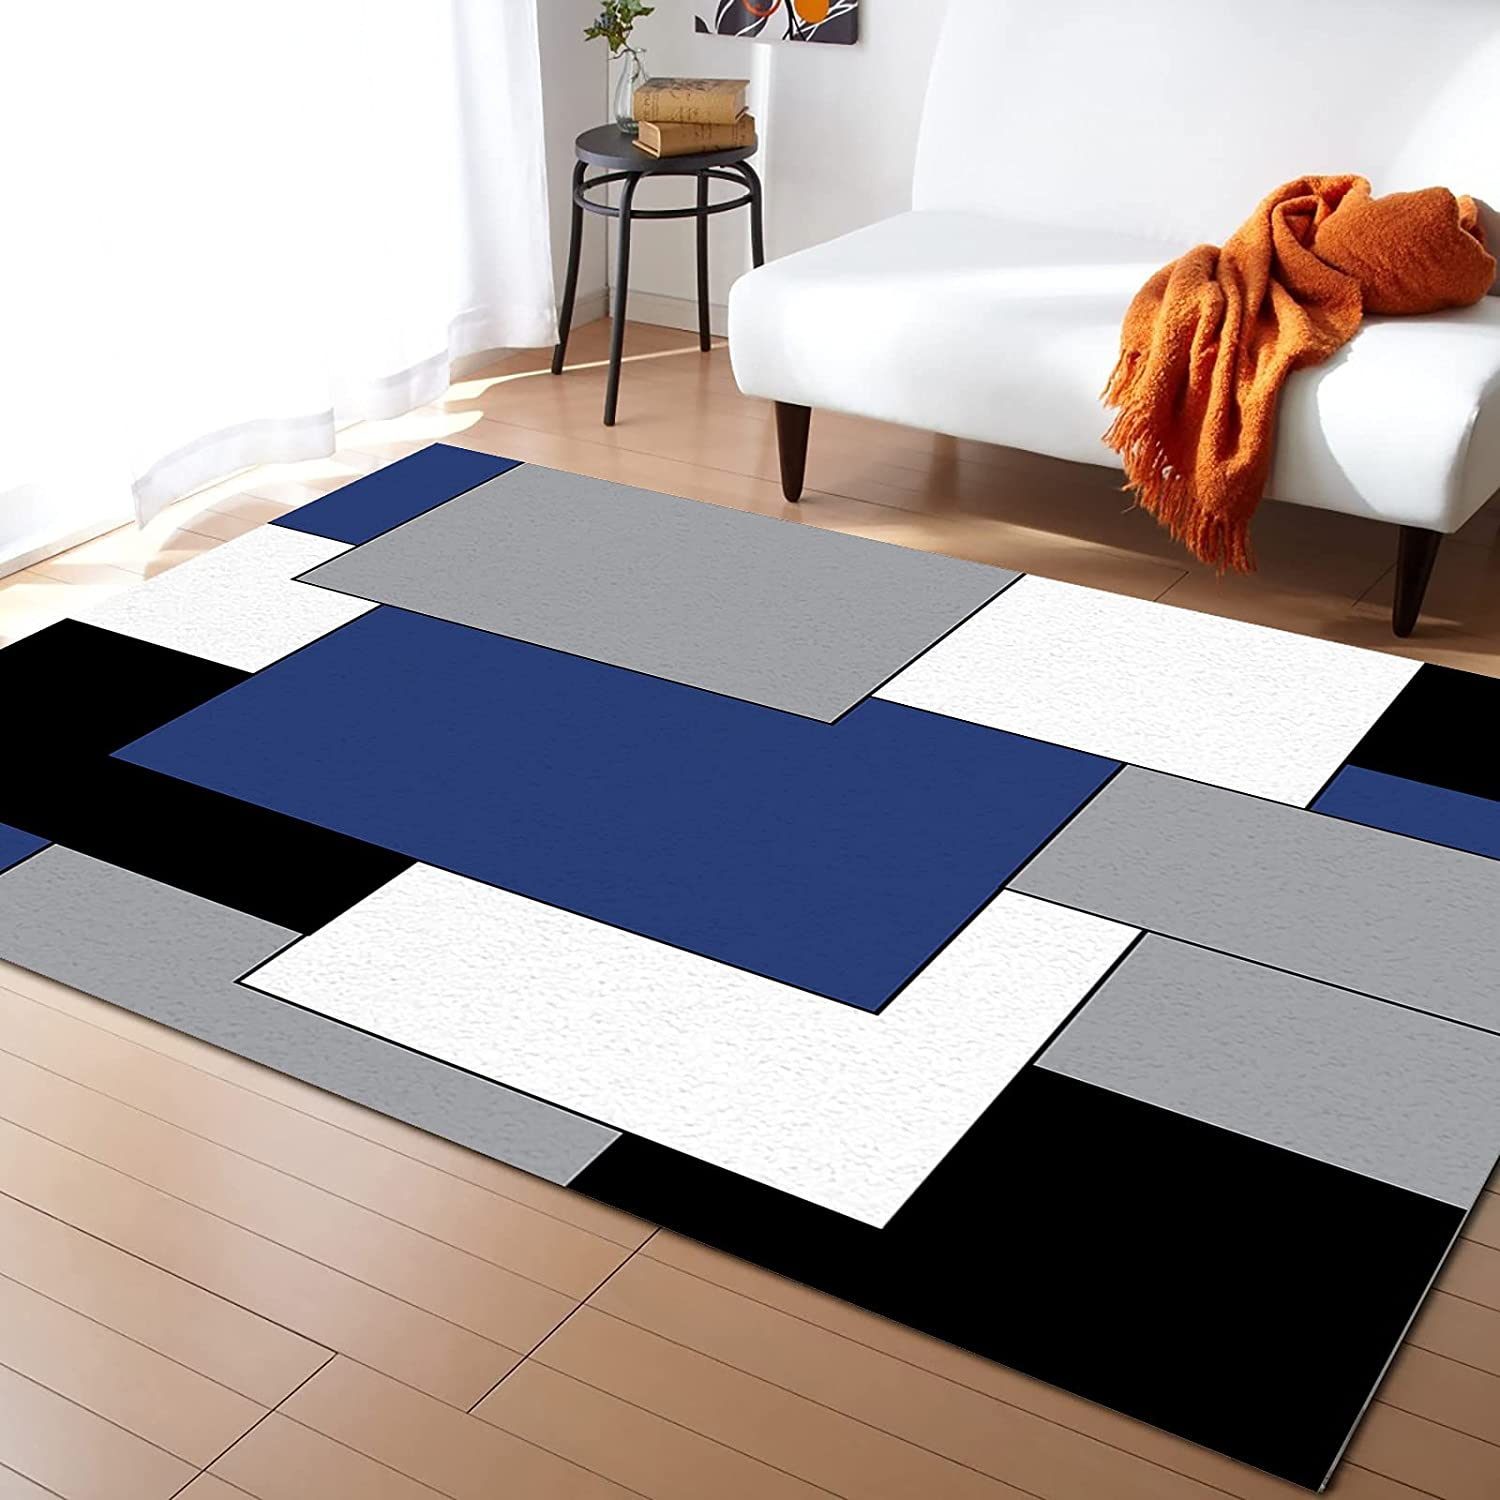 Area Rugs for Living Room Bedroom Black Blue Navy Stitching Excellence Gray Direct store